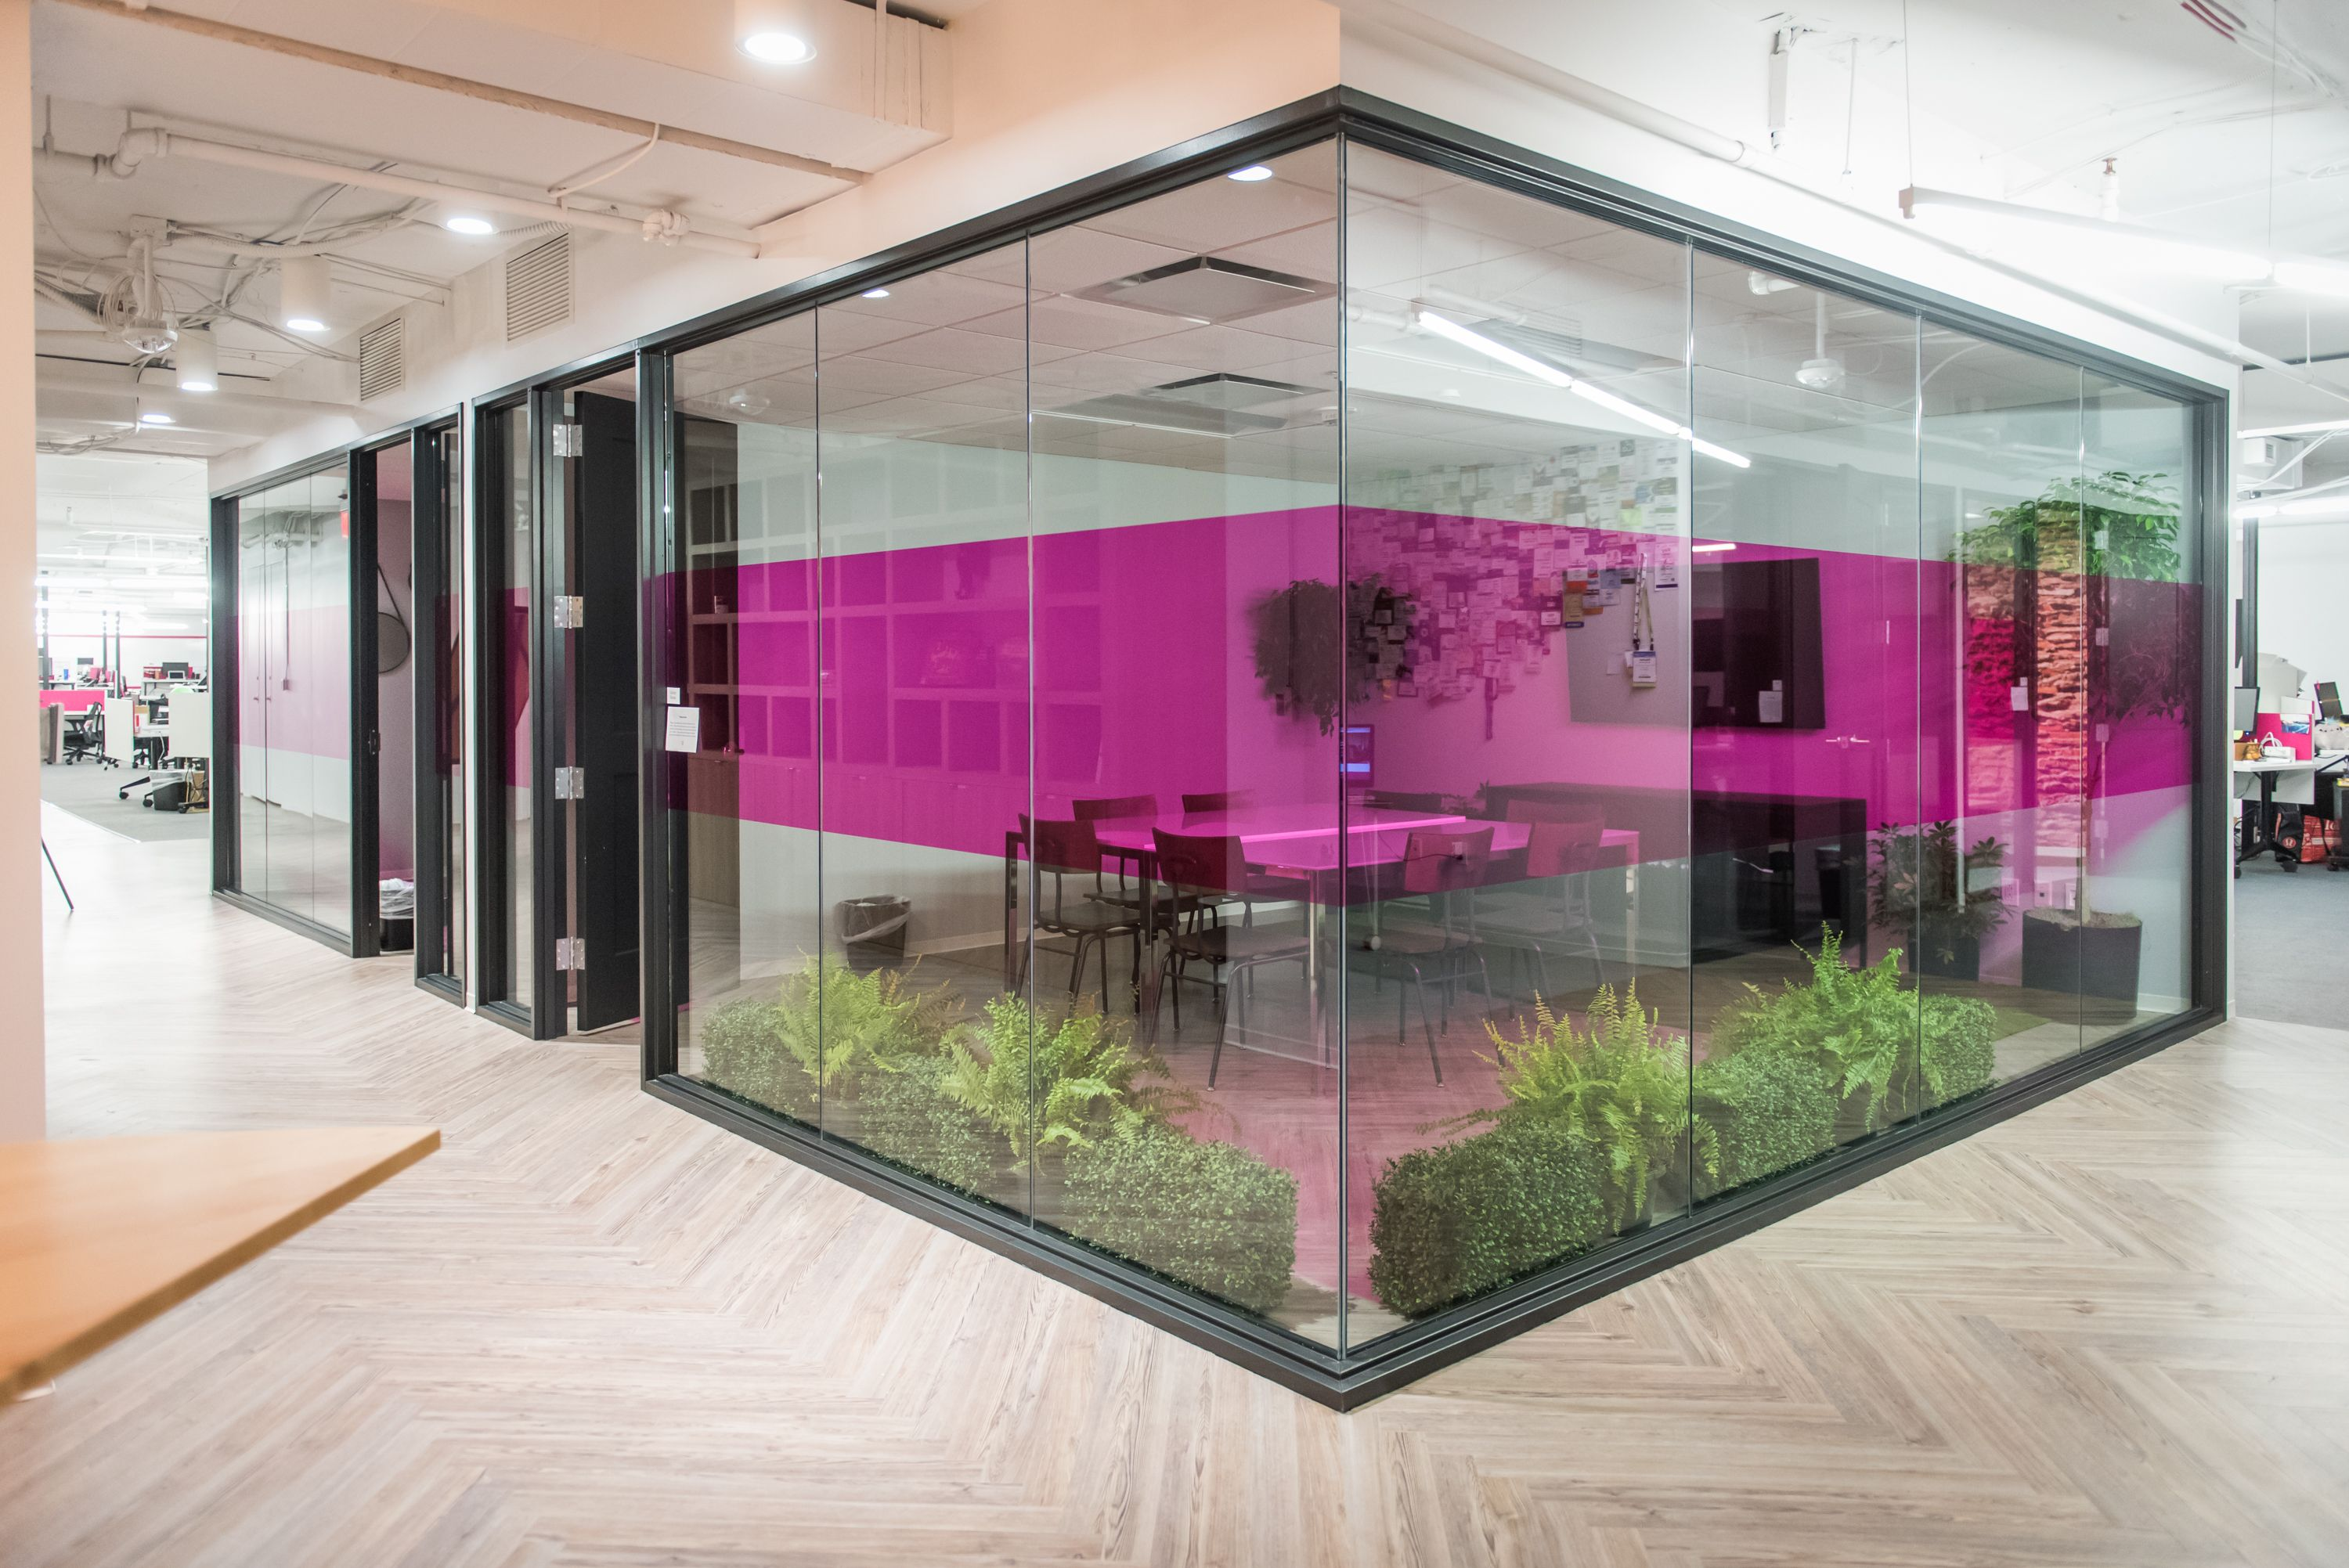 Social Tables Headquarters   Like The Combination Of Color, Greenery And  Design